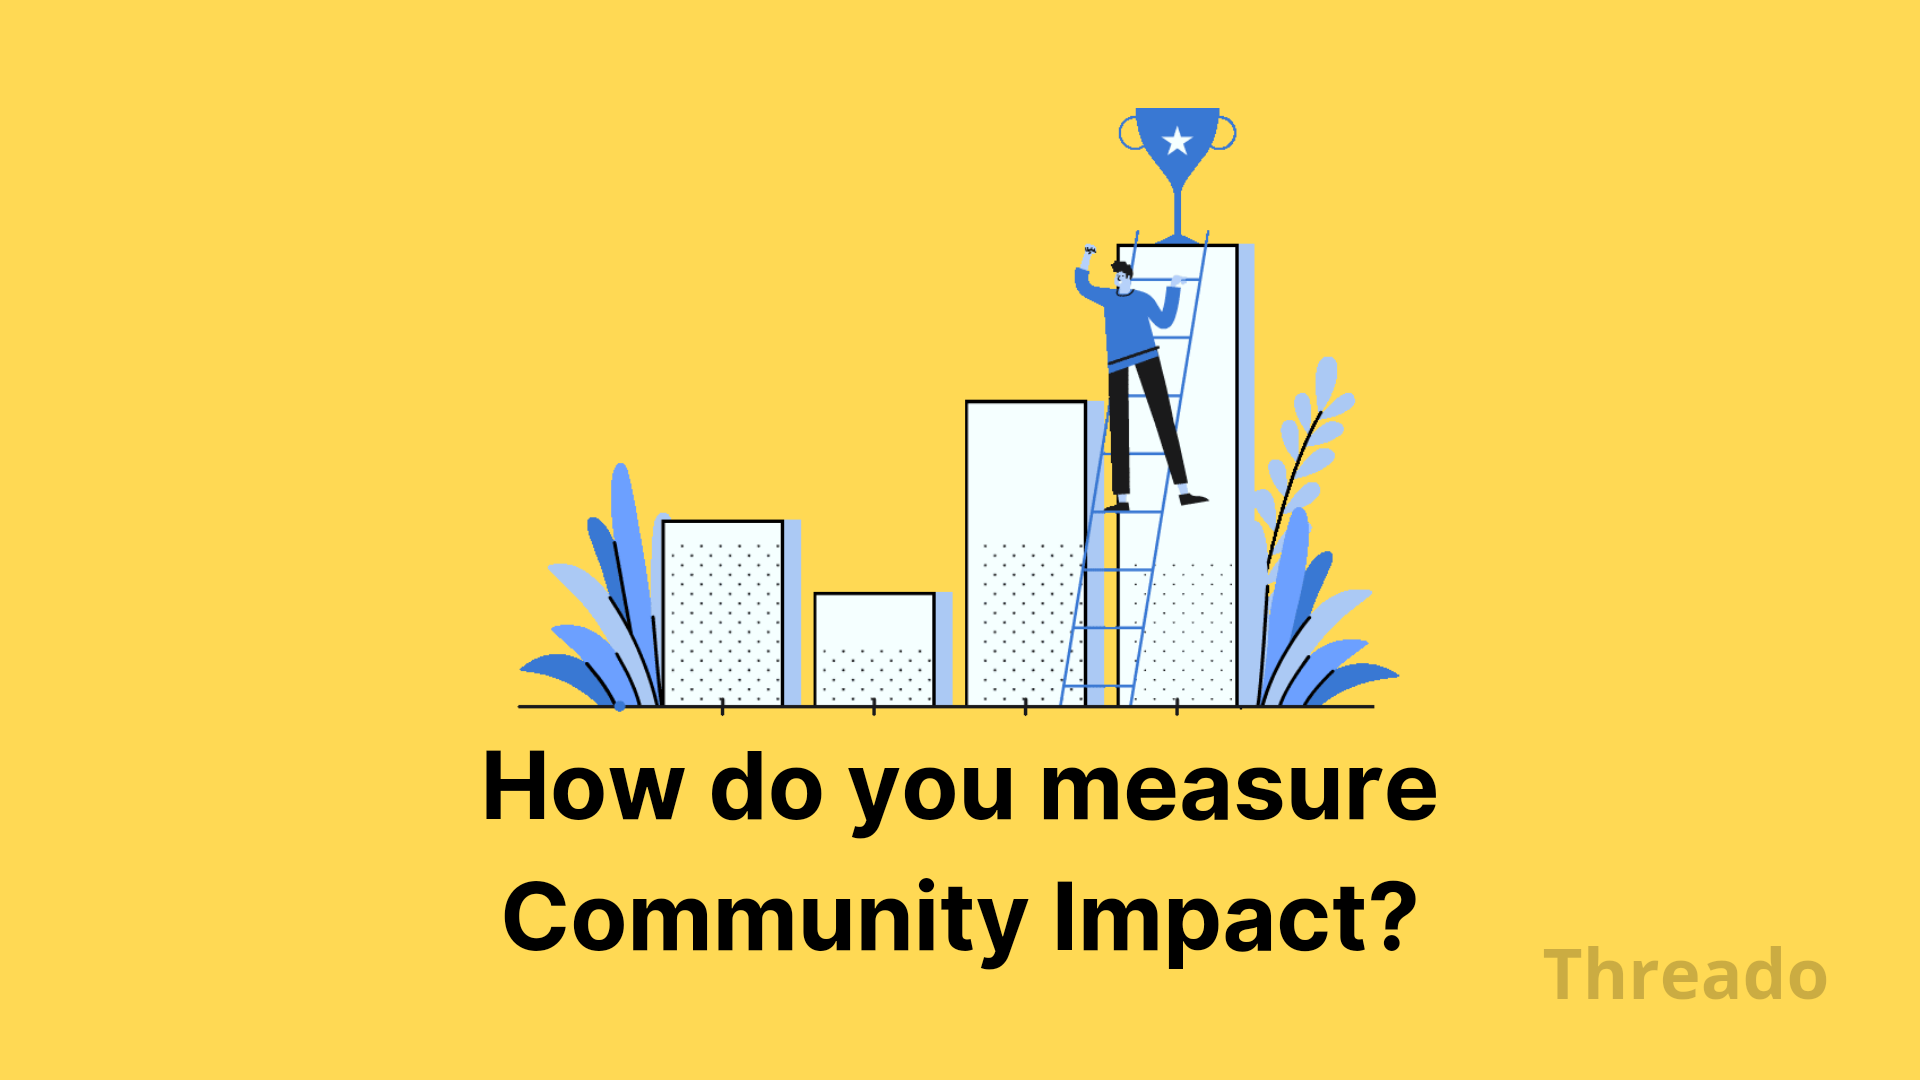 How do you measure impact of your community?